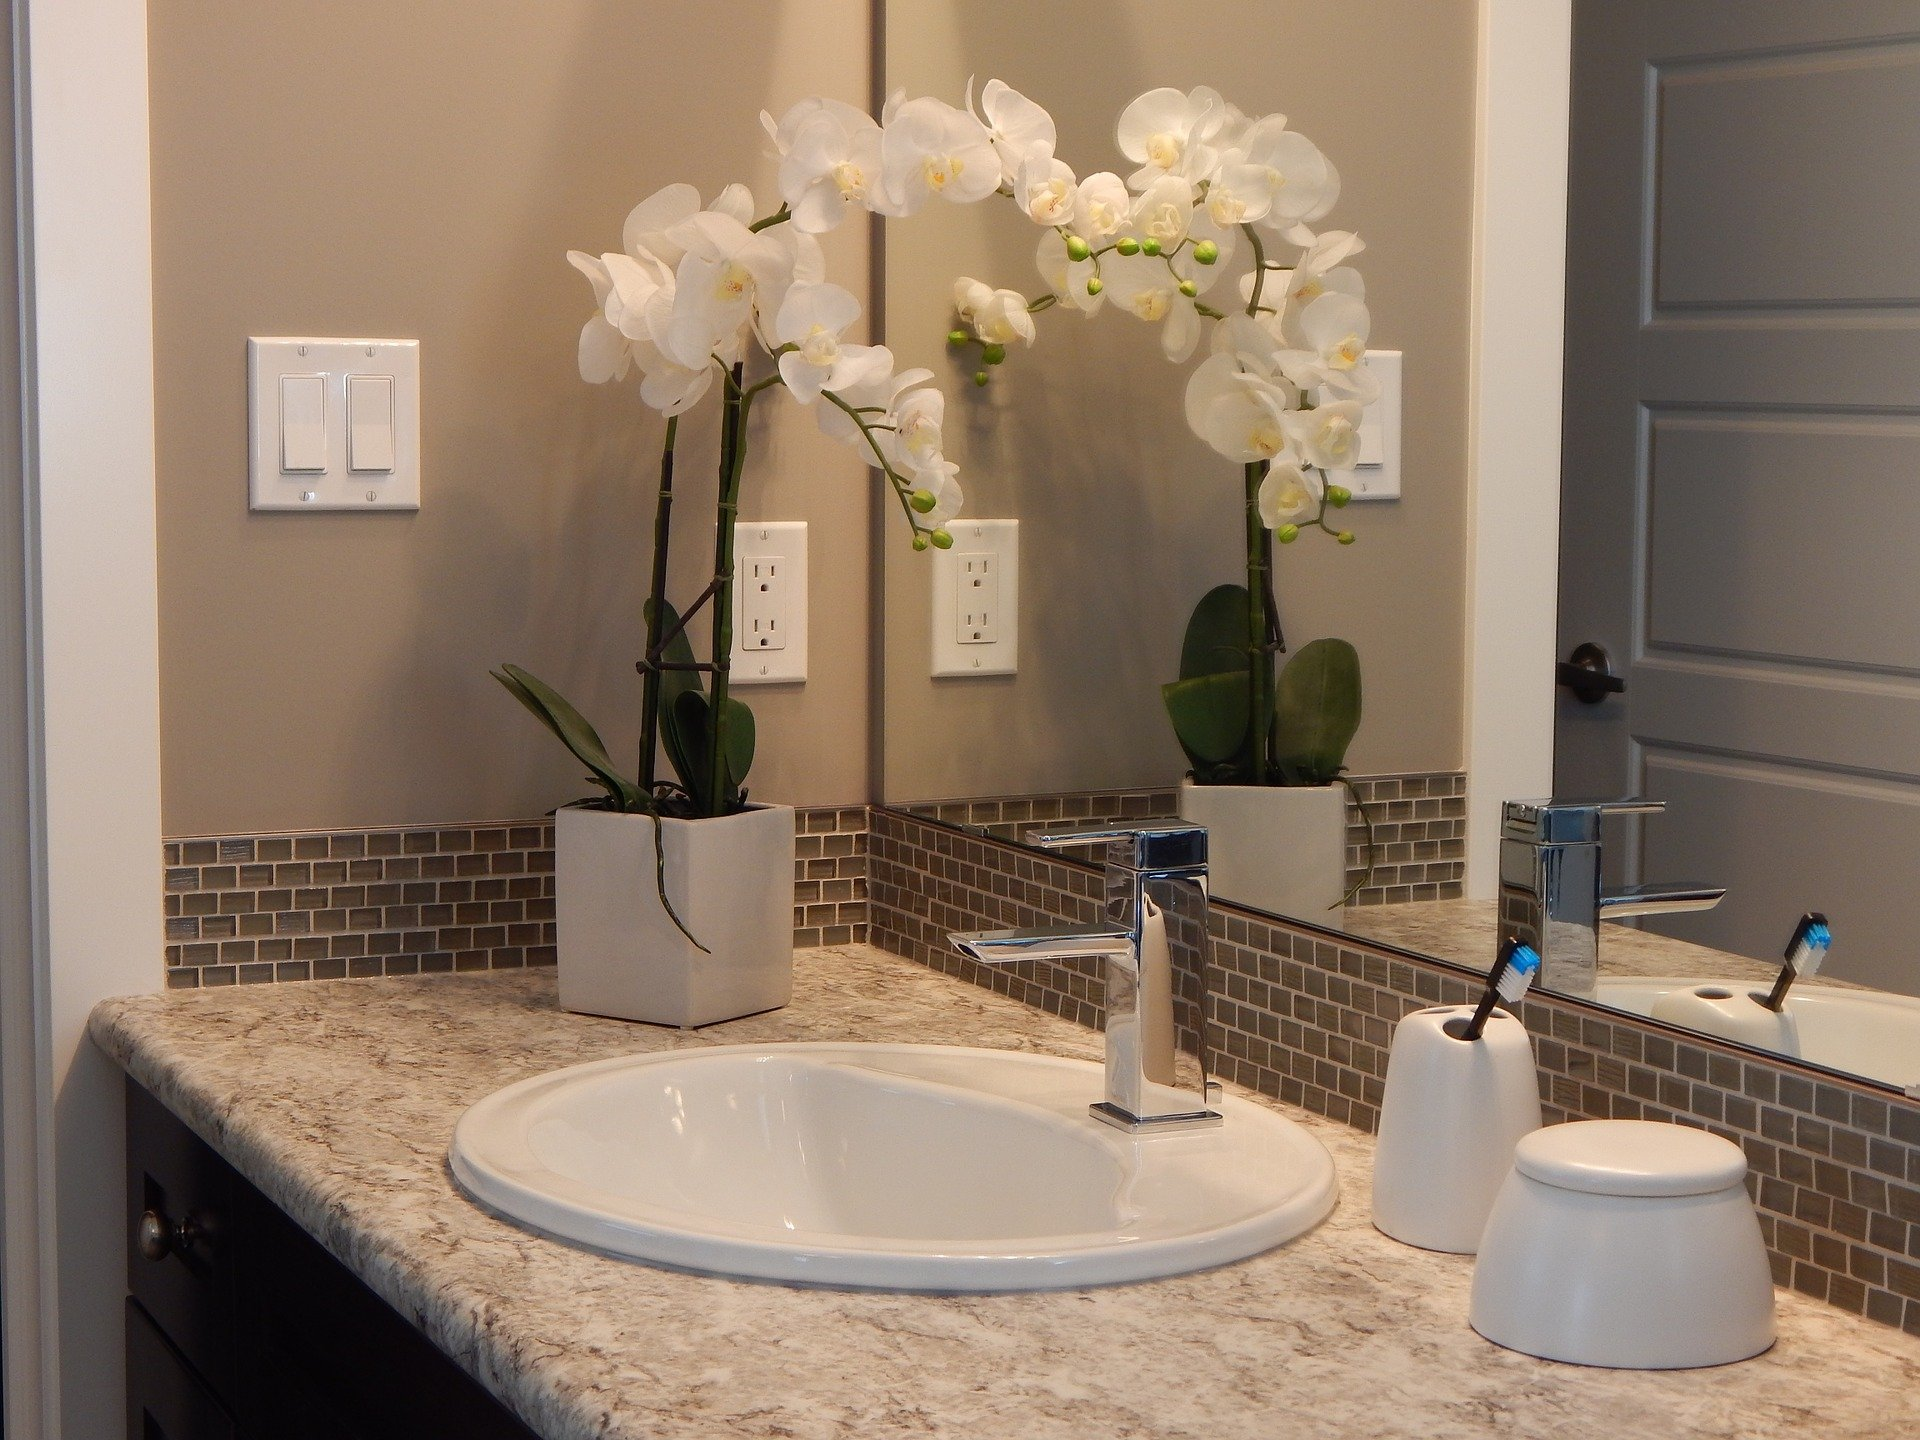 Tips on How to Spruce Up Your Small Bathroom 3